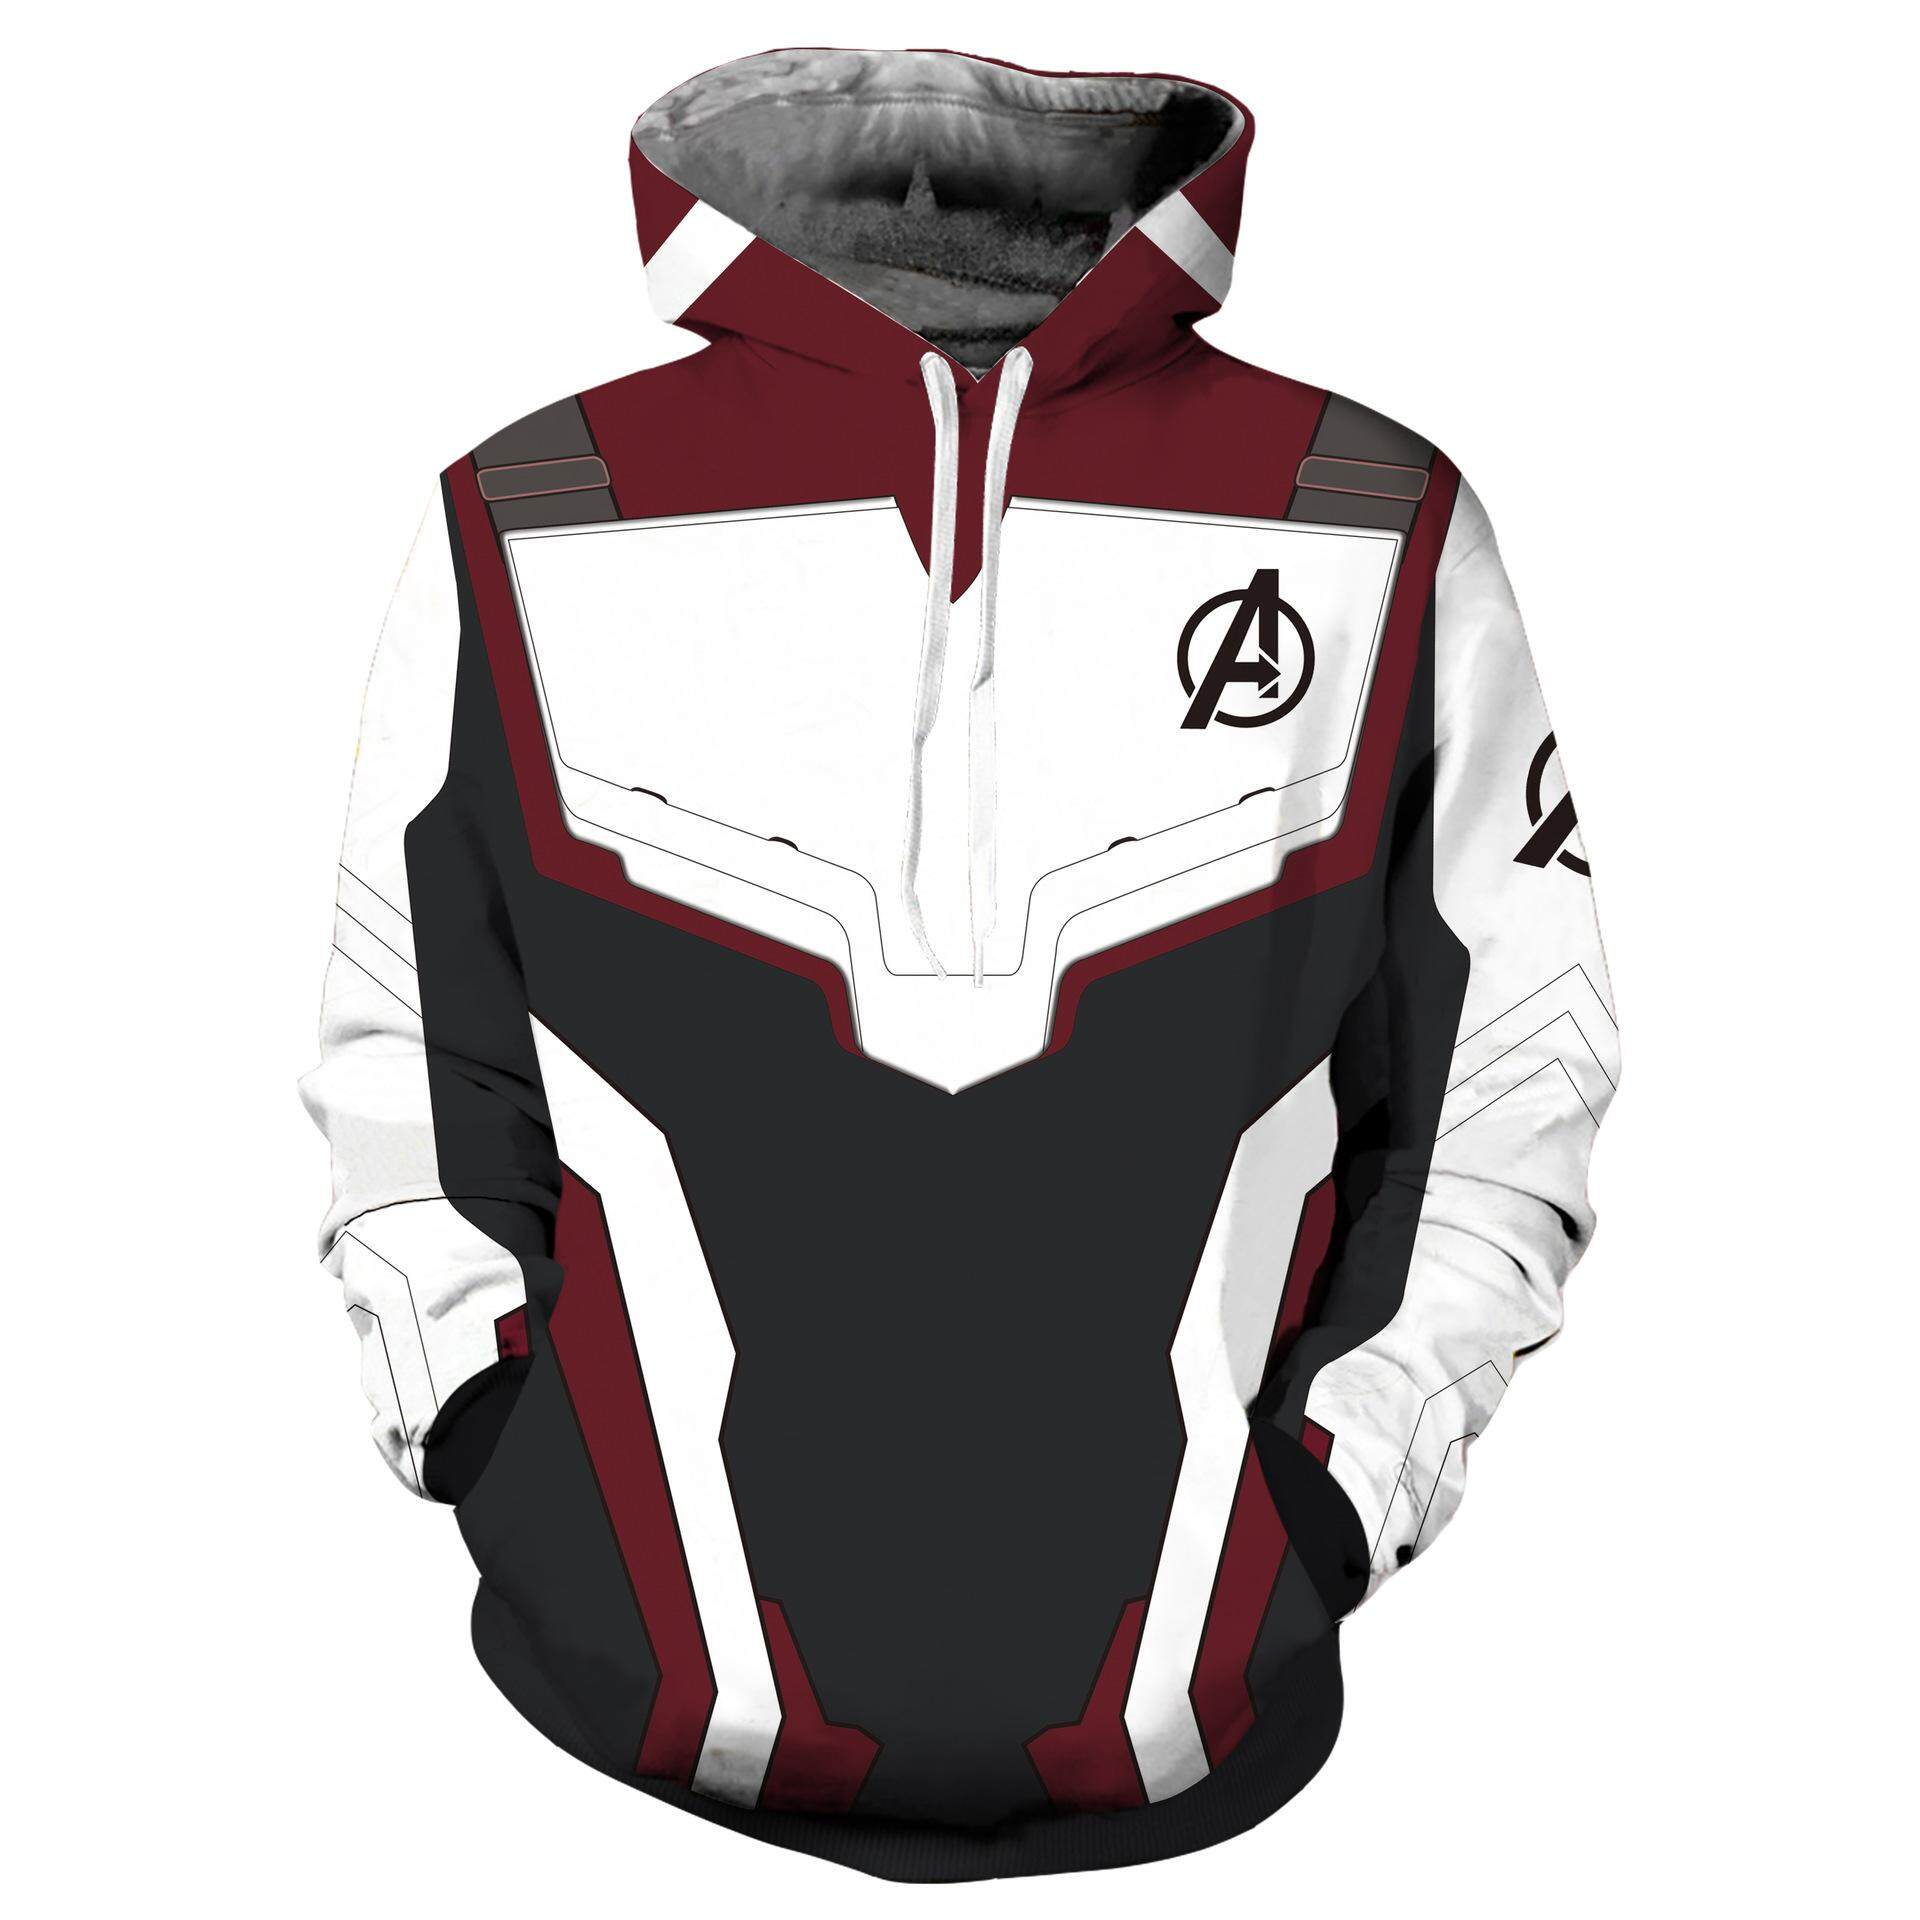 a907d9981 The Avengers 4 Endgame Quantum Realm Sweatshirt Jacket Advanced Tech  Superhero Iron Man Hoodies Suit